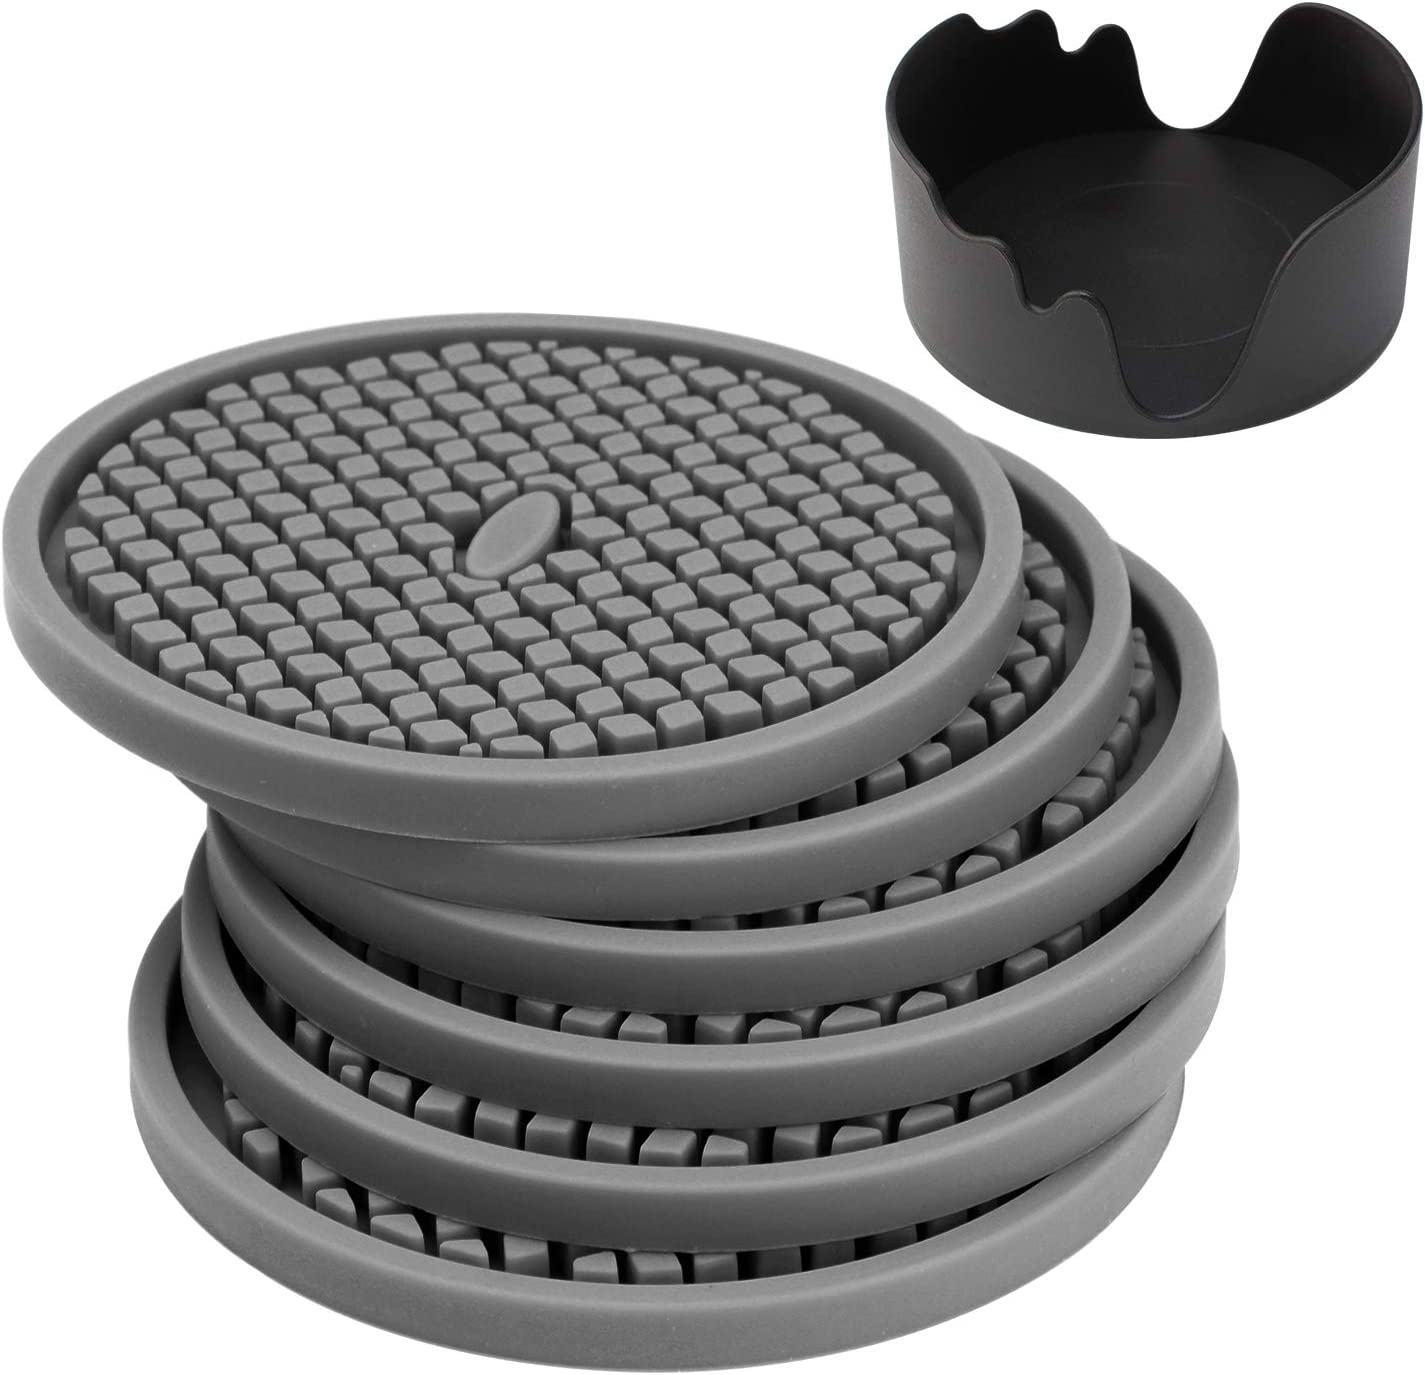 Silicone Drink Coasters Set of 6 in Holder, IPHOX 3.94 Inches Flexible Heat Resistant Coaster for Drinks with Deep Grooved and Non-Slip Bottom, Protect Furniture From Dirty and Scratched (Gray)